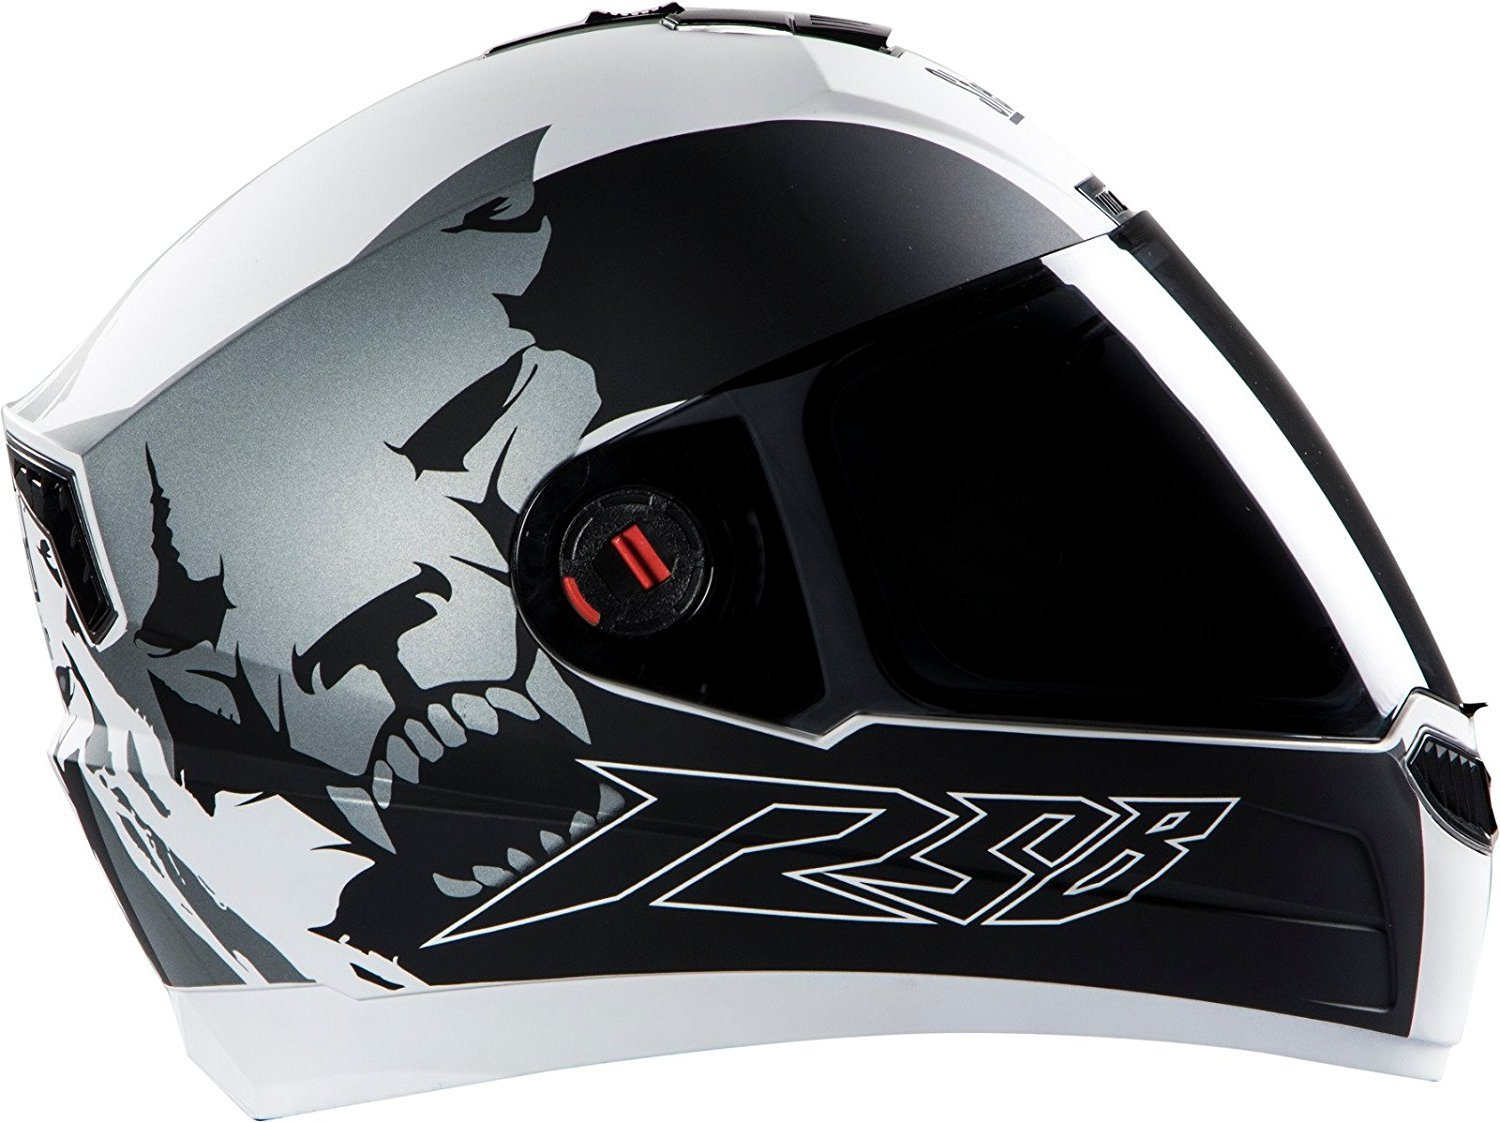 Steelbird Air Glossy Finish with Smoke Visor Helmet